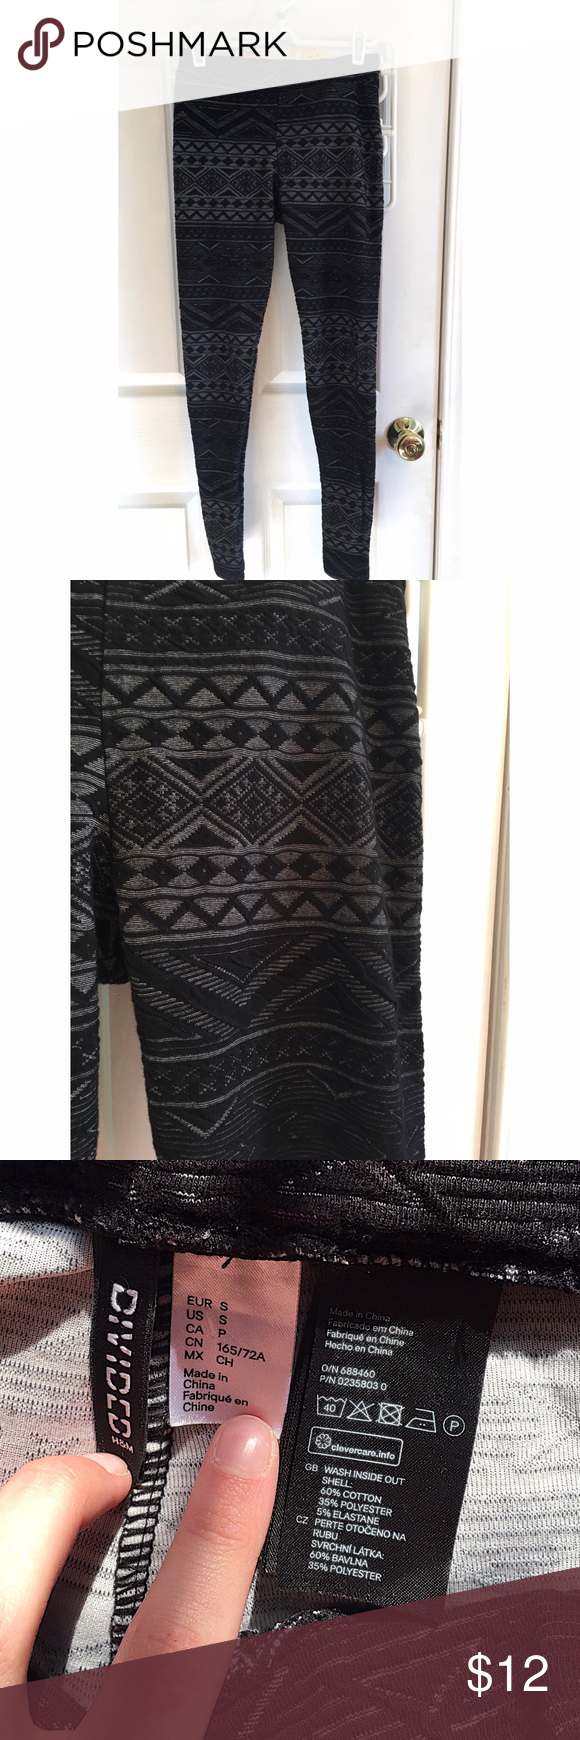 H&M Black Tribal Leggings -Divided by H&M -Women's Leggings -Size Small -Black Patterned Leggings  -In Perfect Condition  -No Flaws Ask if any questions! H&M Pants Leggings